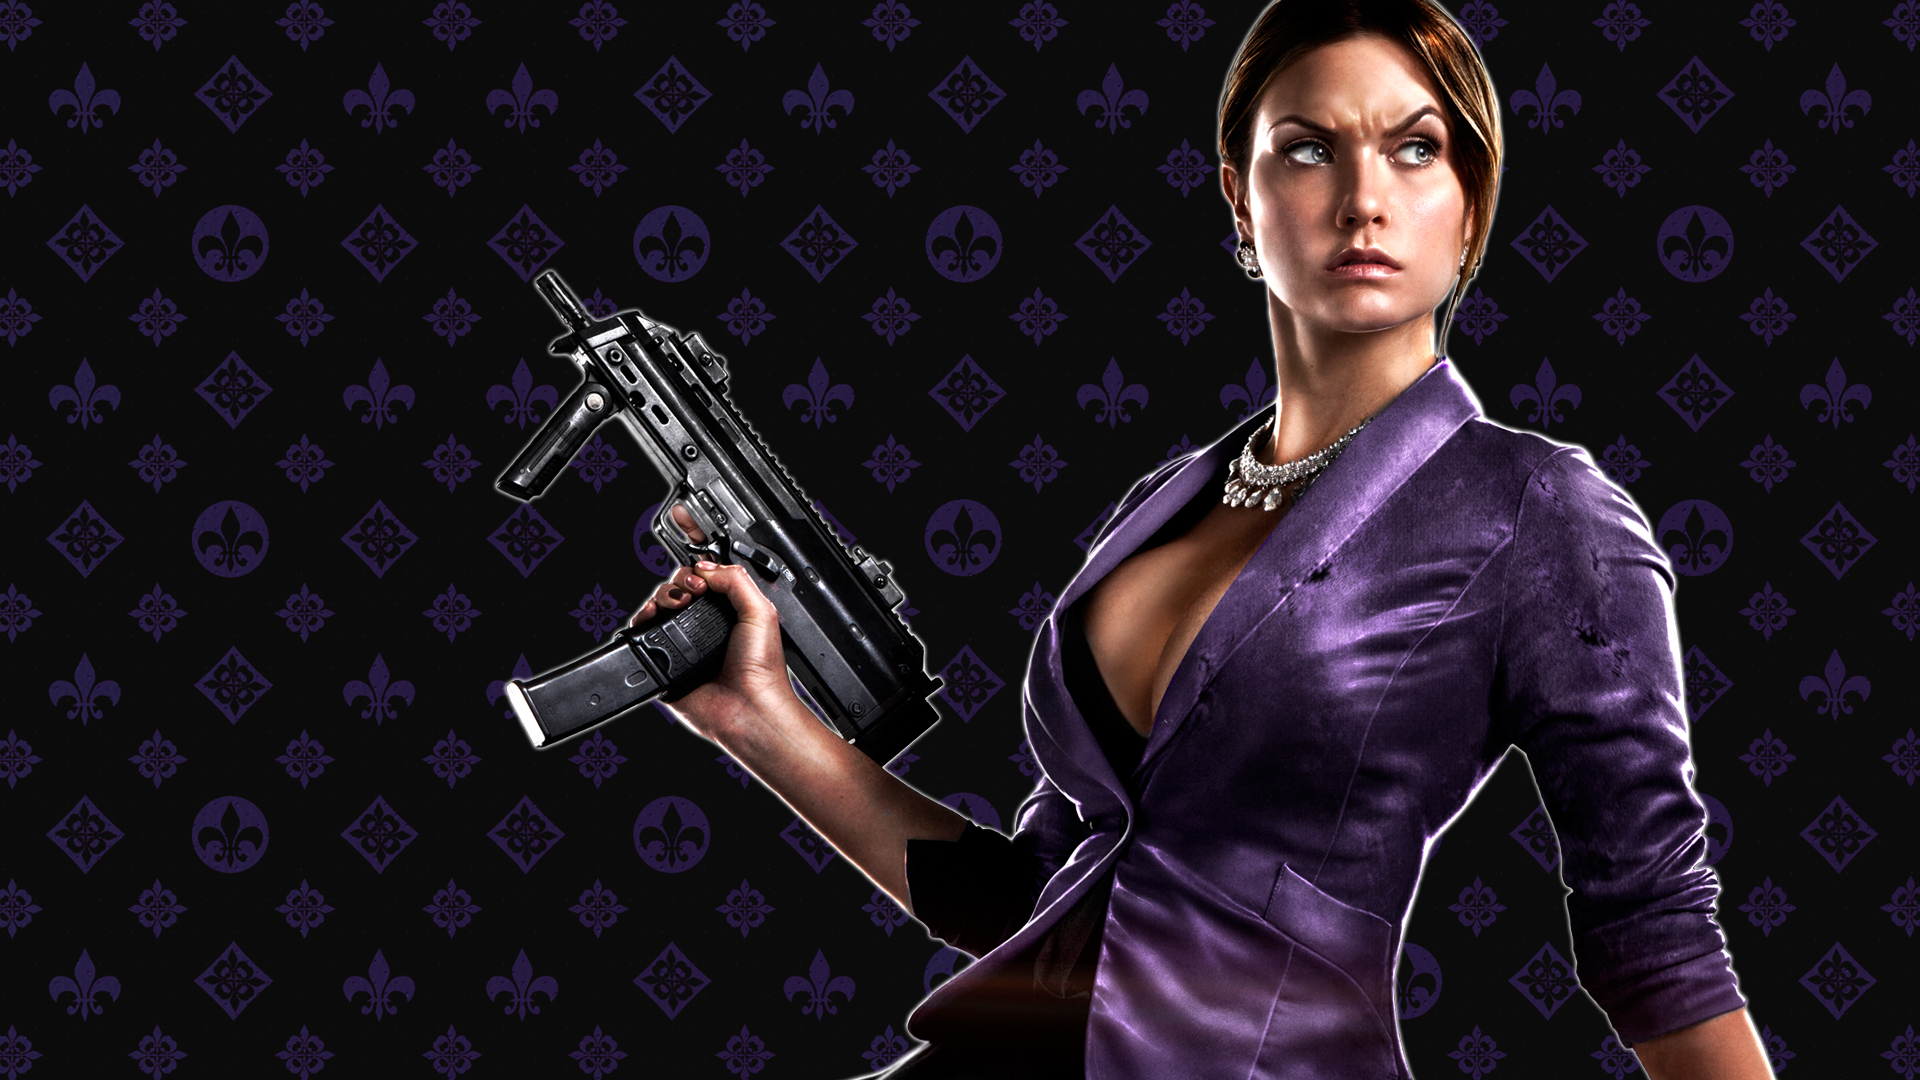 Hot sexy saints row girls mobile wallpaper  nude movies